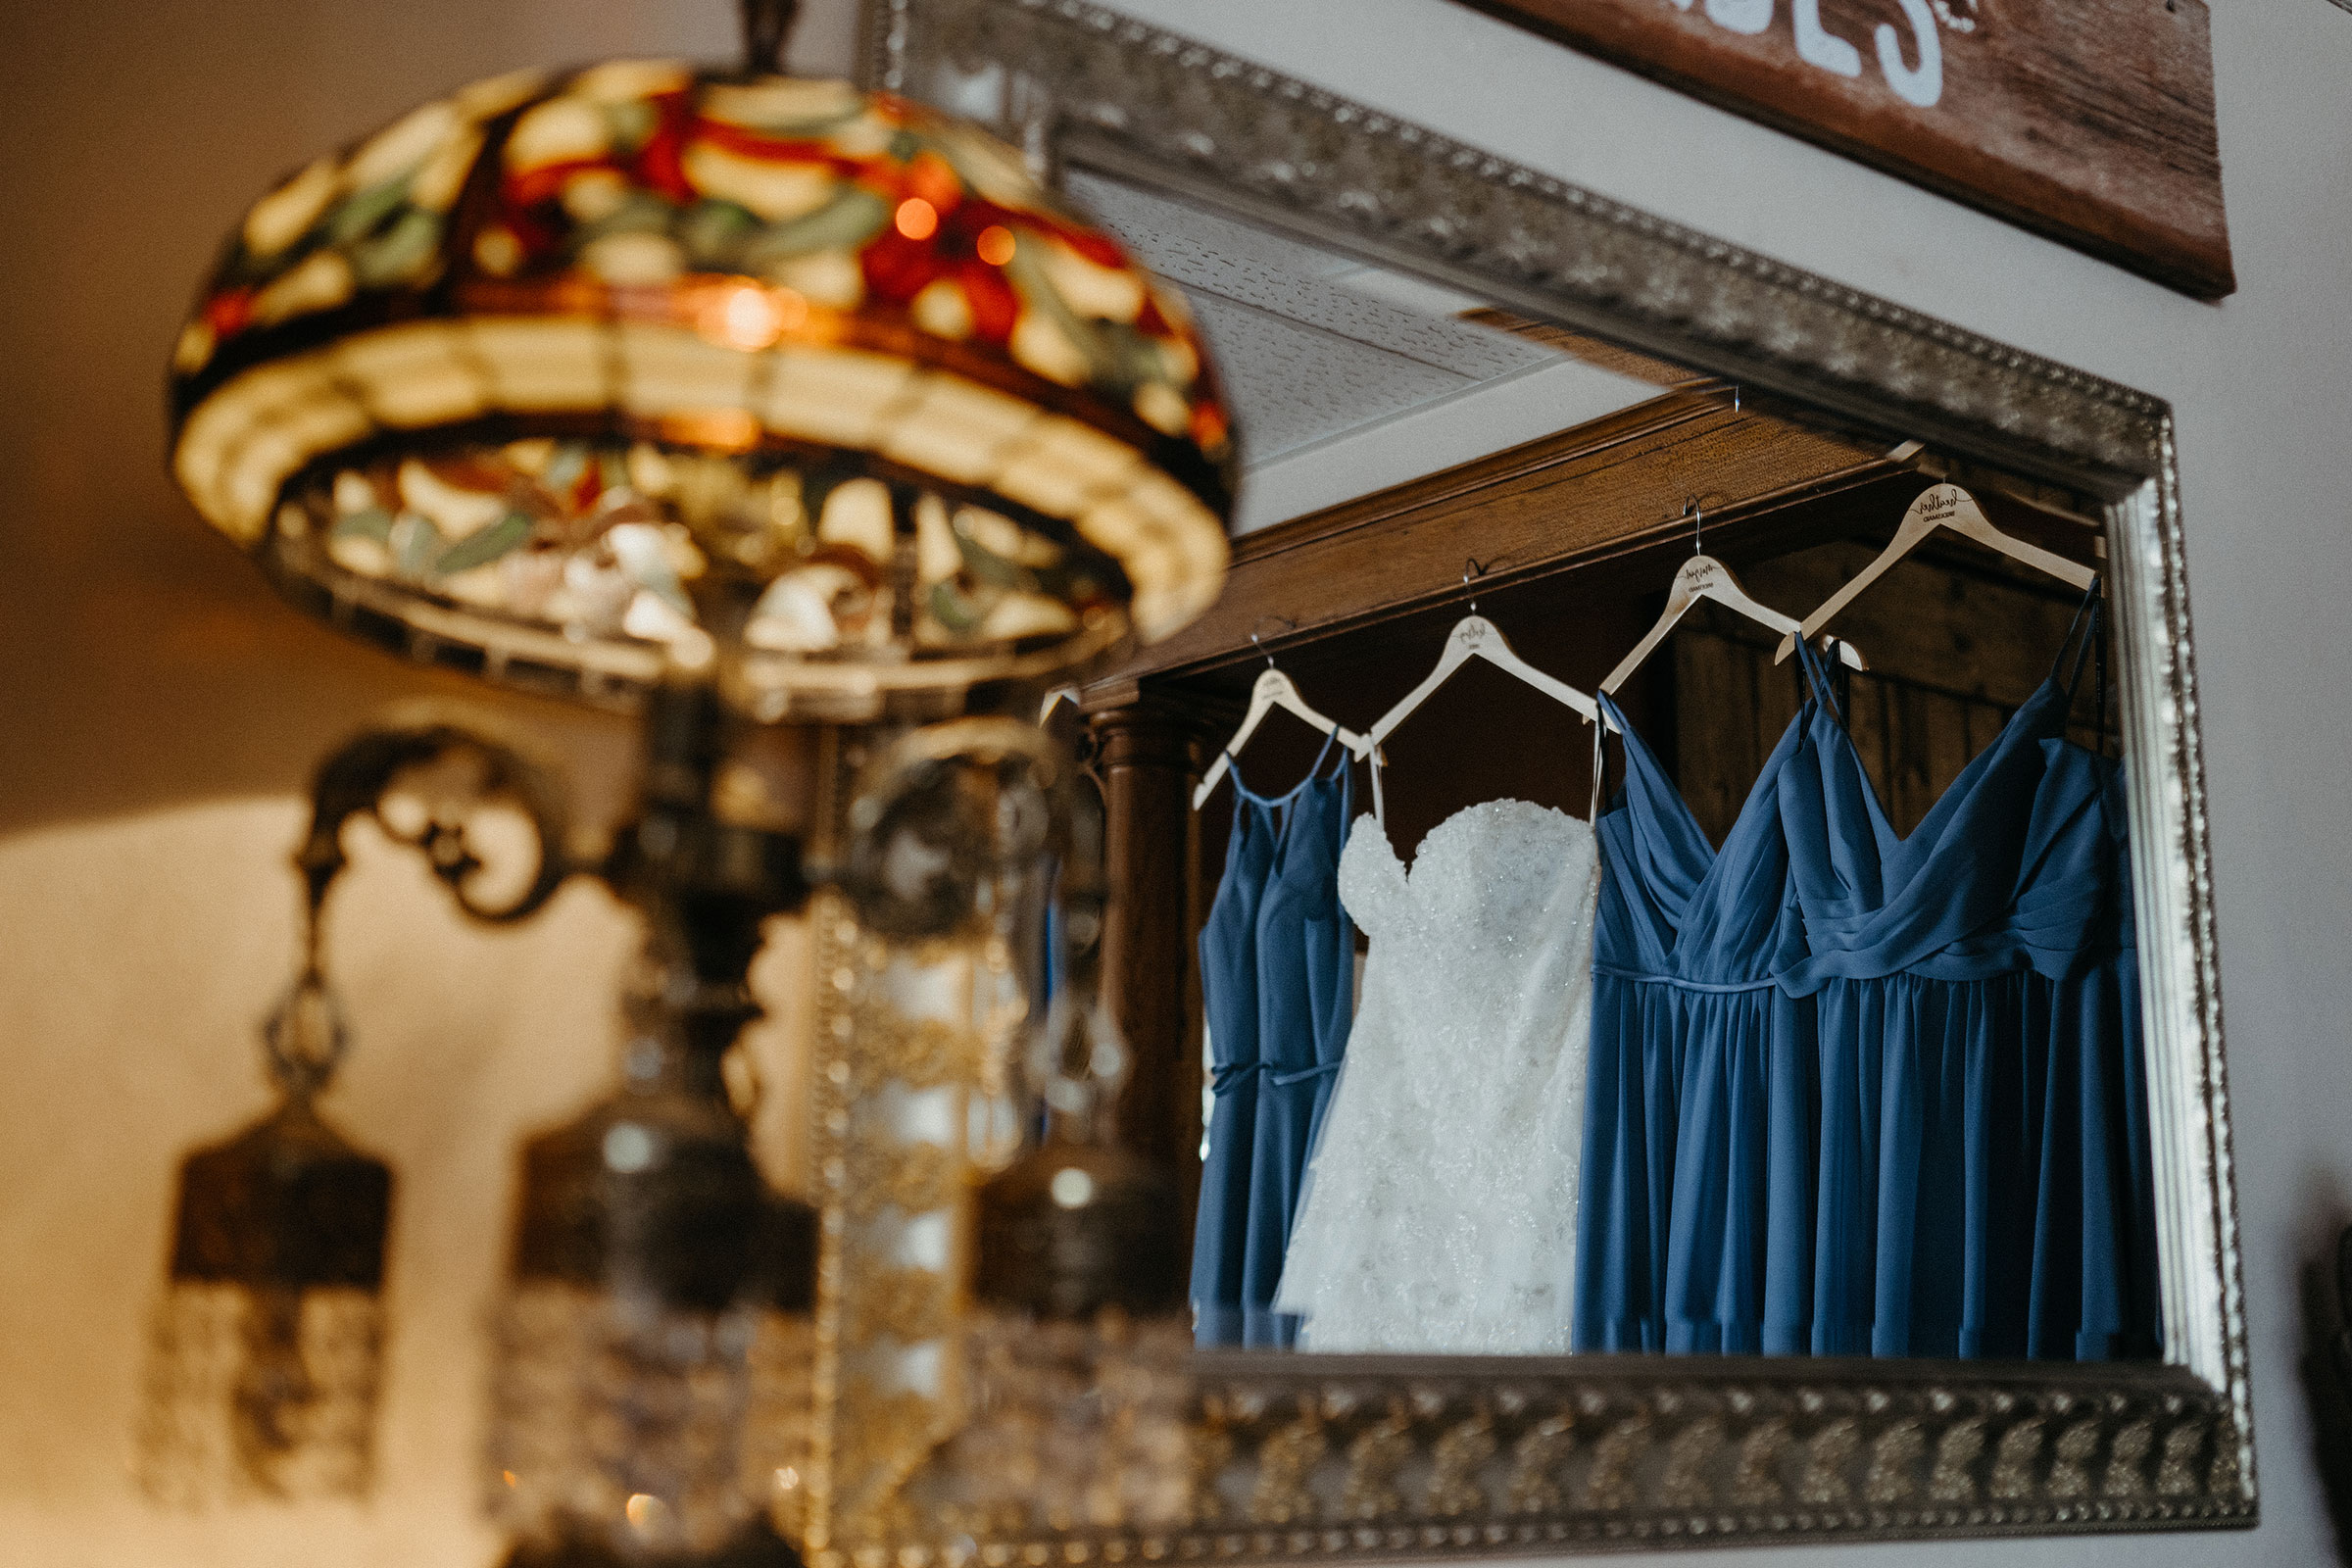 bridal-dress-and-bridesmaids-dresses-hanging-up-decades-event-center-building-desmoines-iowa-raelyn-ramey-photography..jpg